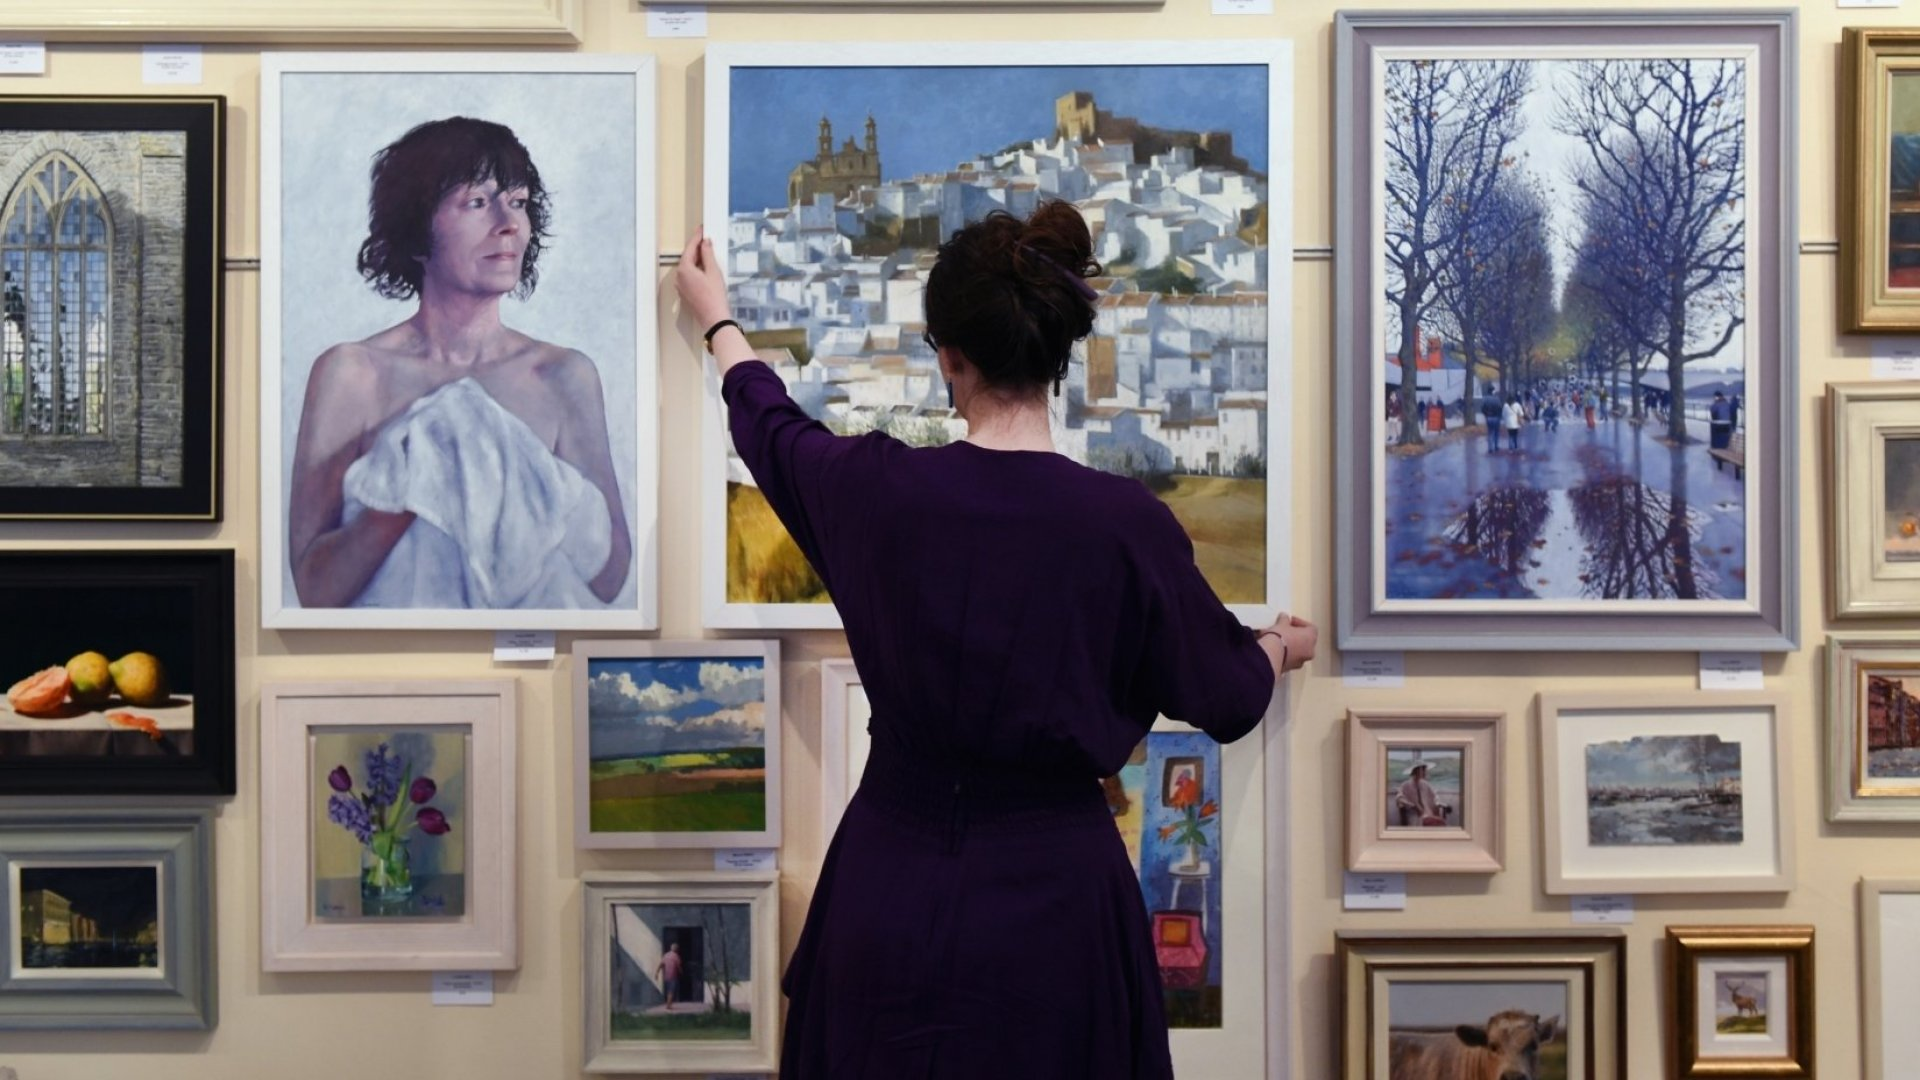 Doctors Are Now Prescribing Time in Nature and Visits to Art Museums